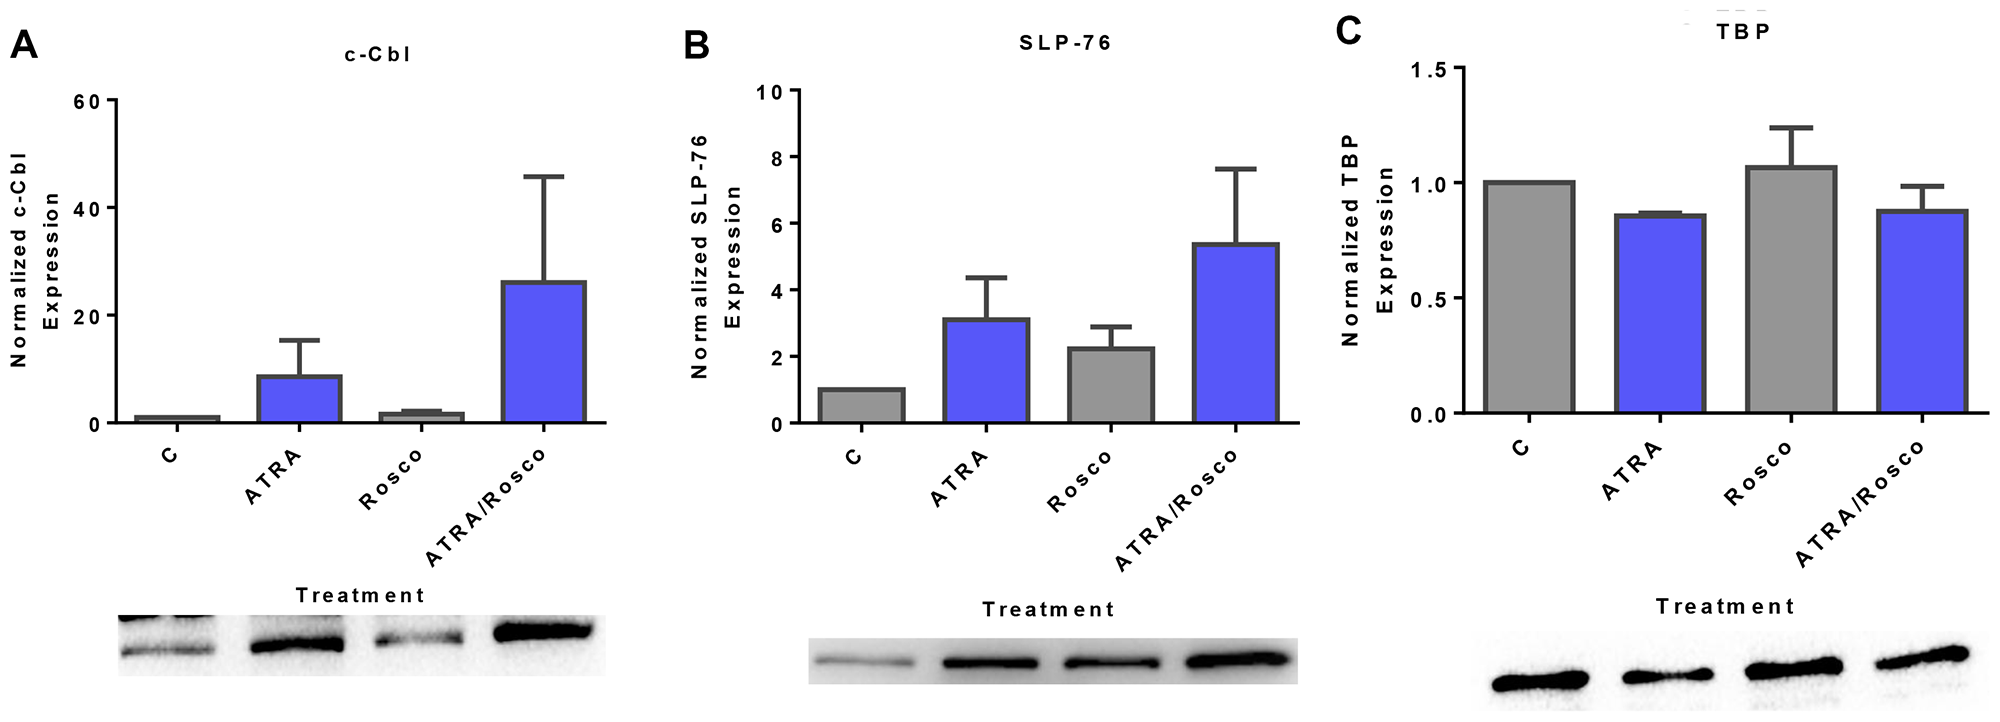 Expression of adaptor proteins (c-Cbl, SLP-76) in the nucleus is enhanced by ATRA and roscovitine.